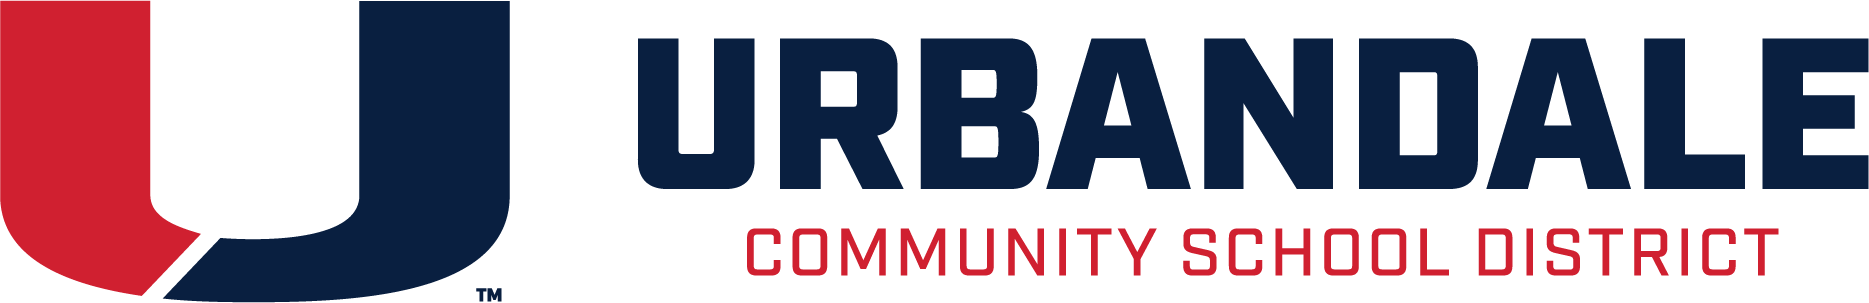 Urbandale Community School District logo